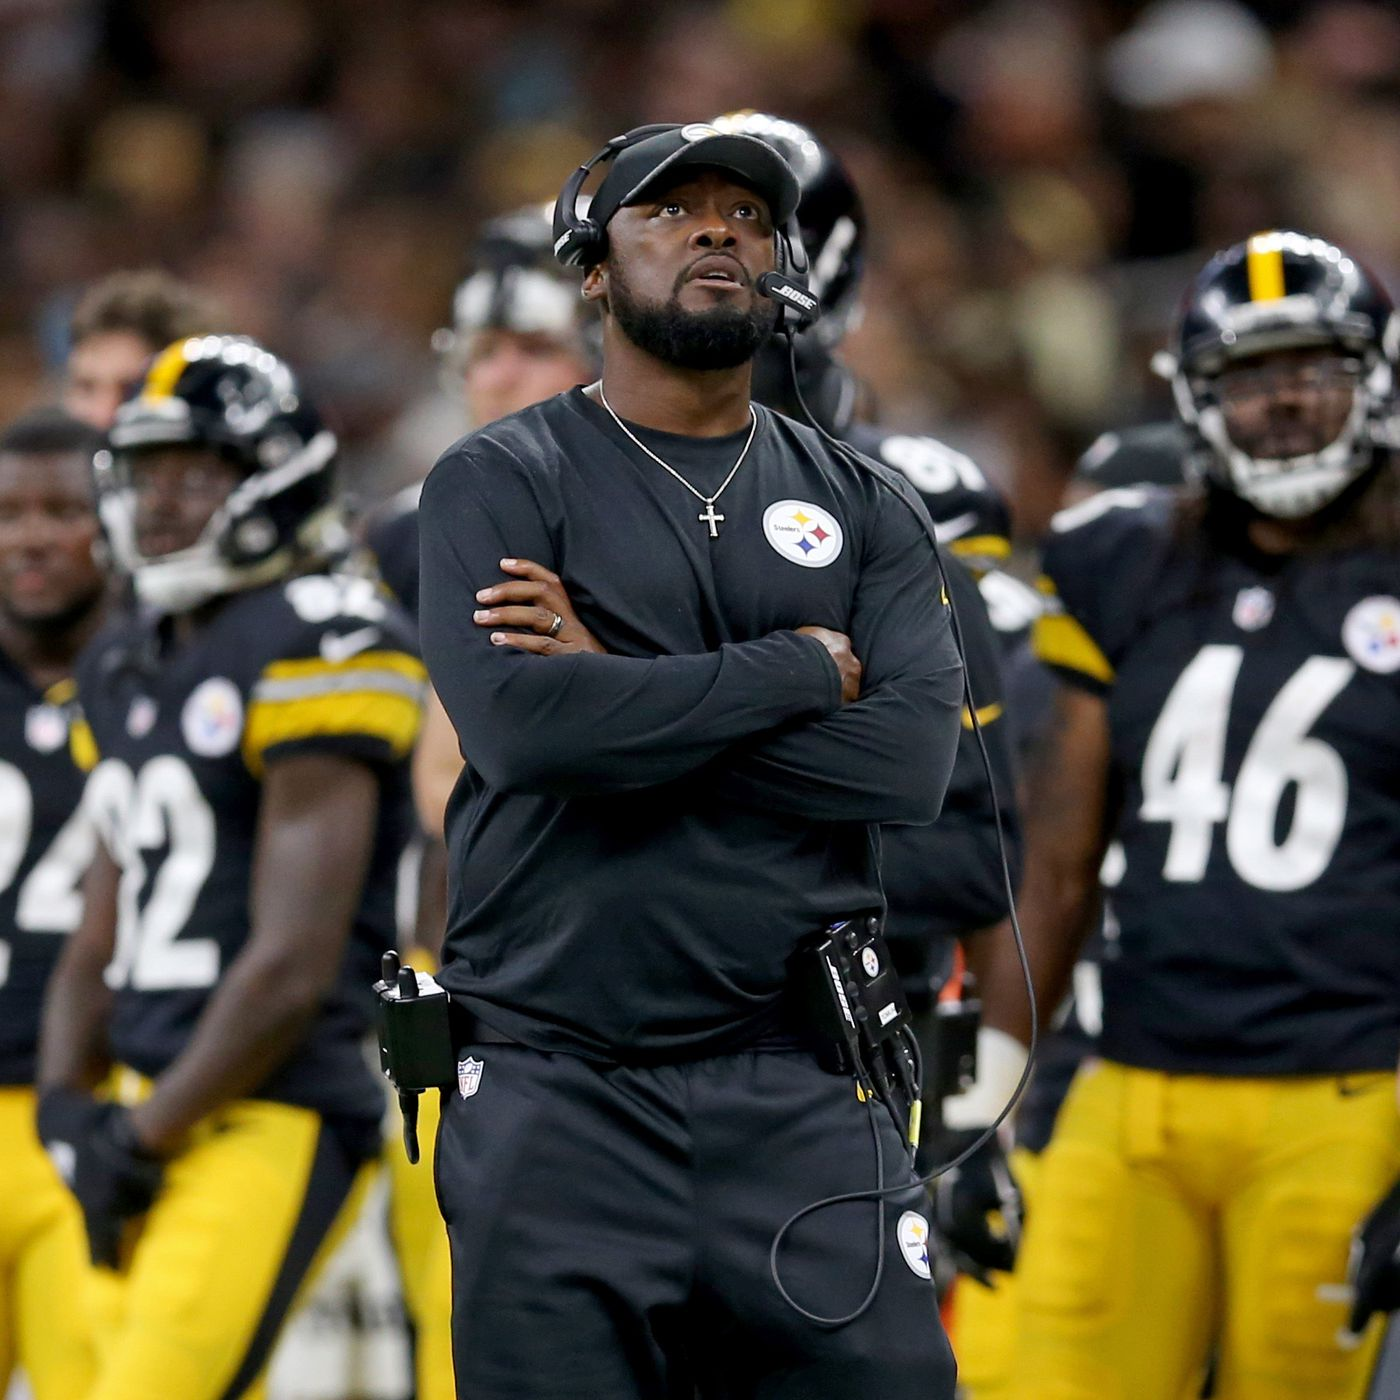 c8236492fc8 History shows Mike Tomlin is slowly putting his stamp on the Pittsburgh  Steelers defense